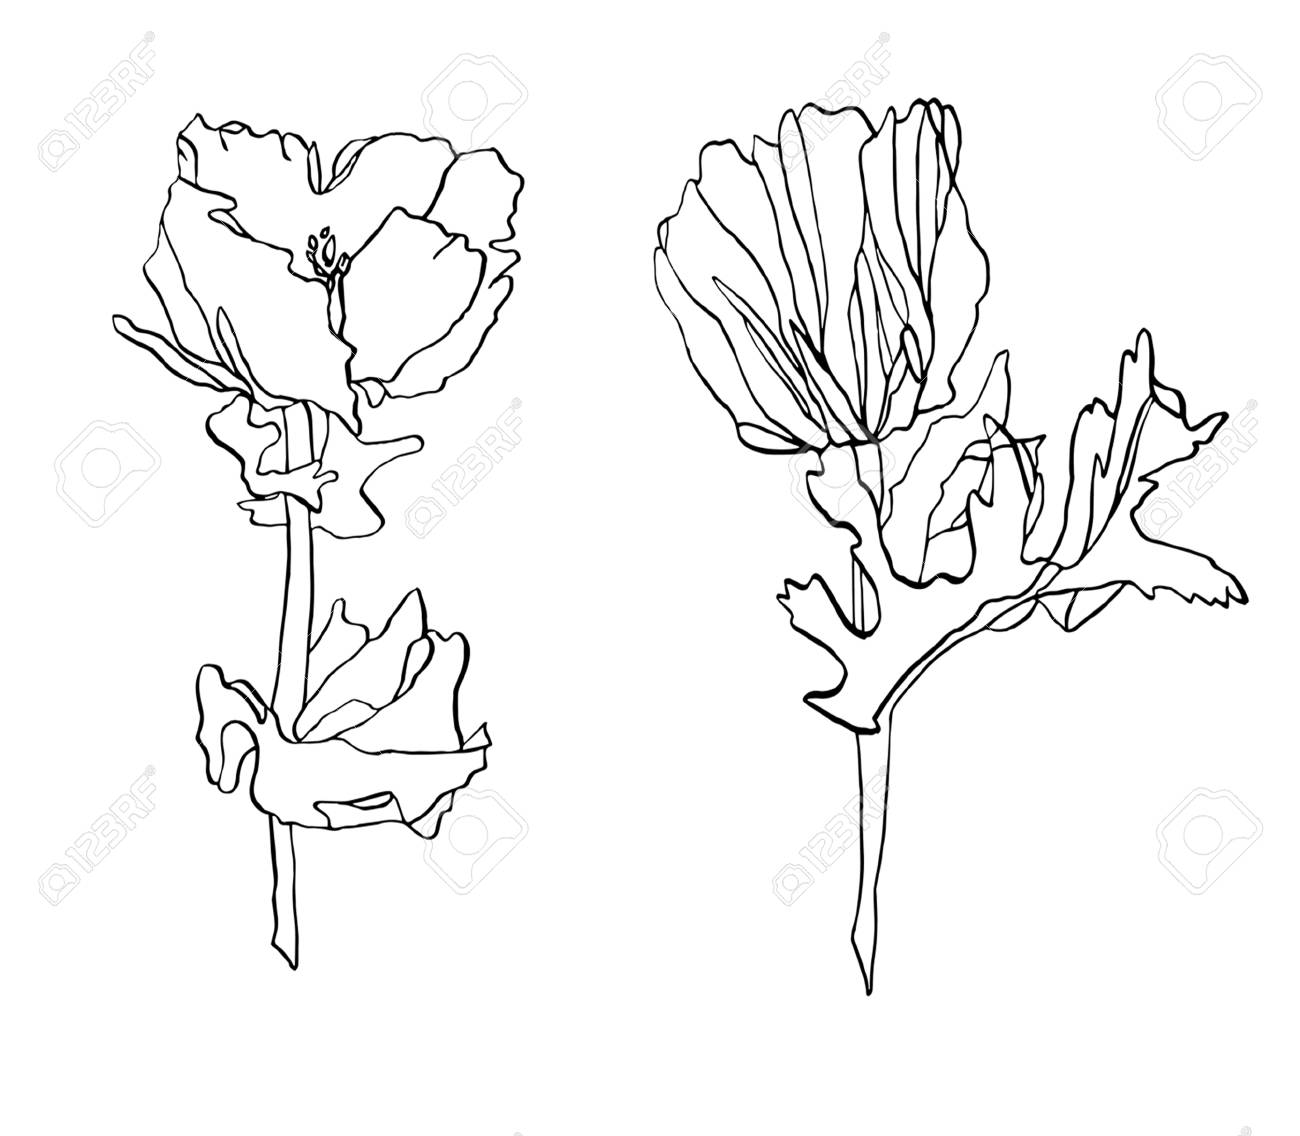 Decorative Ink Drawing Poppy Flower With Leaves Stock Photo Picture